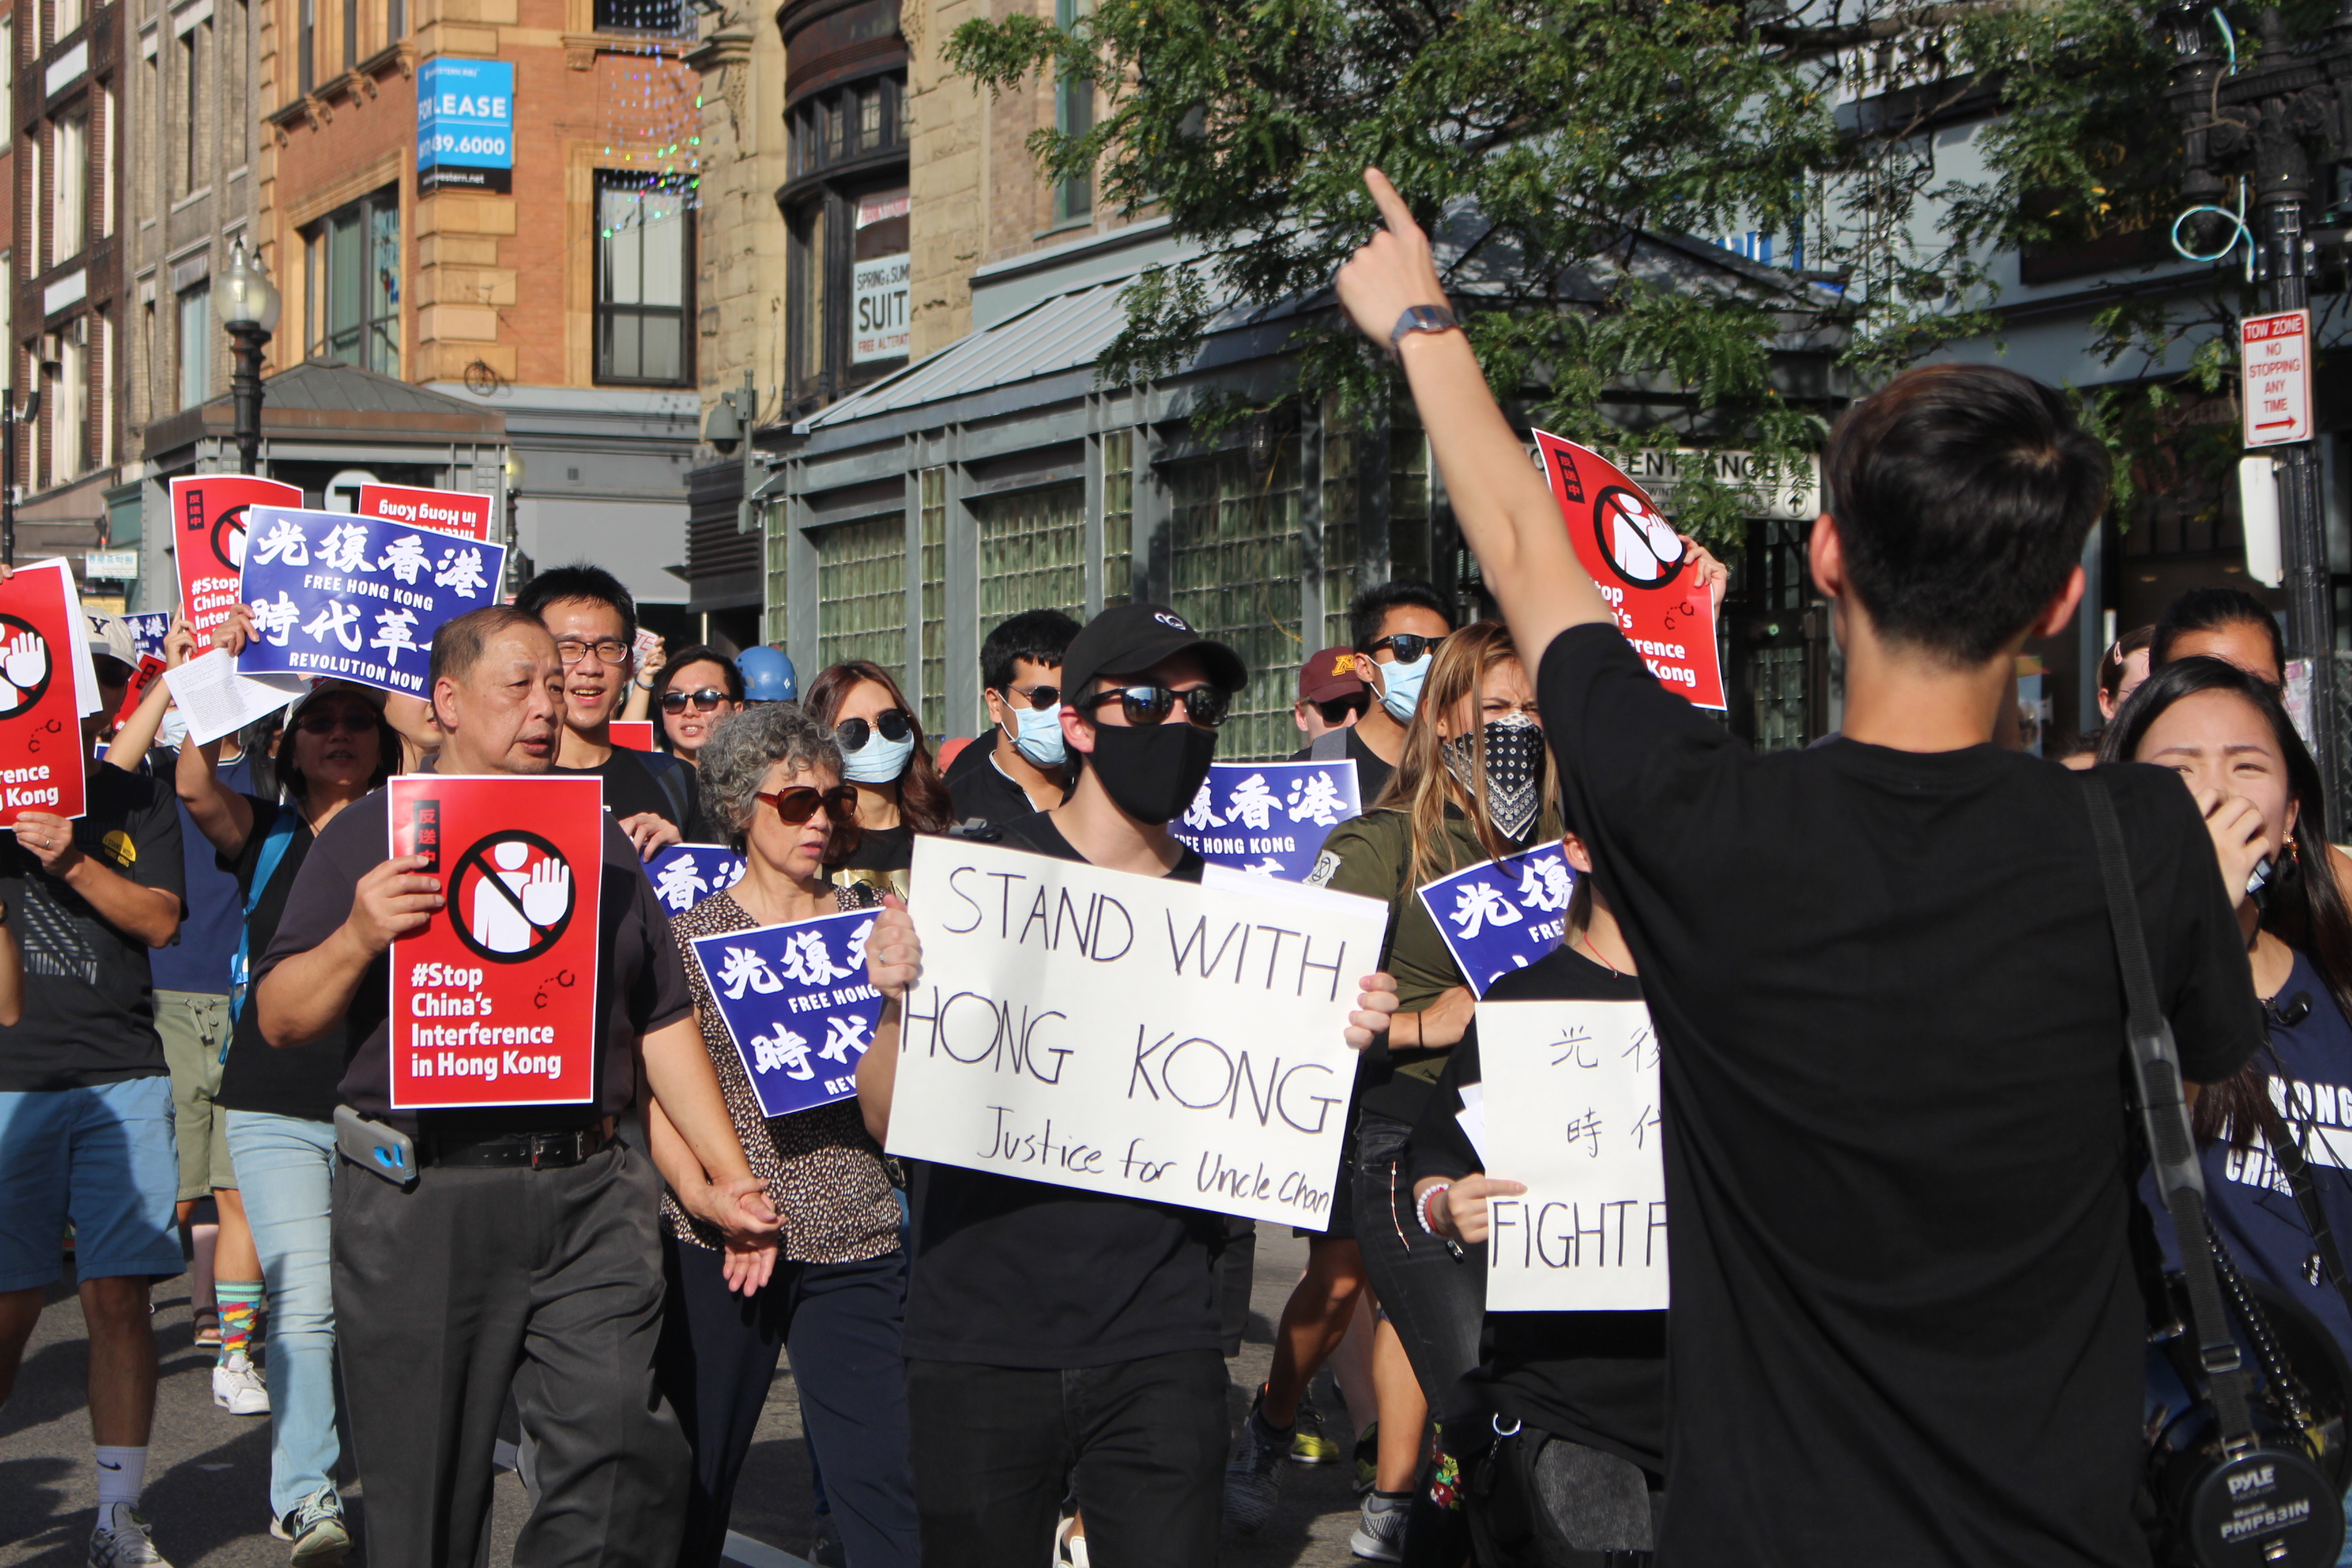 Marchers traveled down Boston's streets carrying banners and wearing masks to hide their identity. Photo by Lex Weaver.